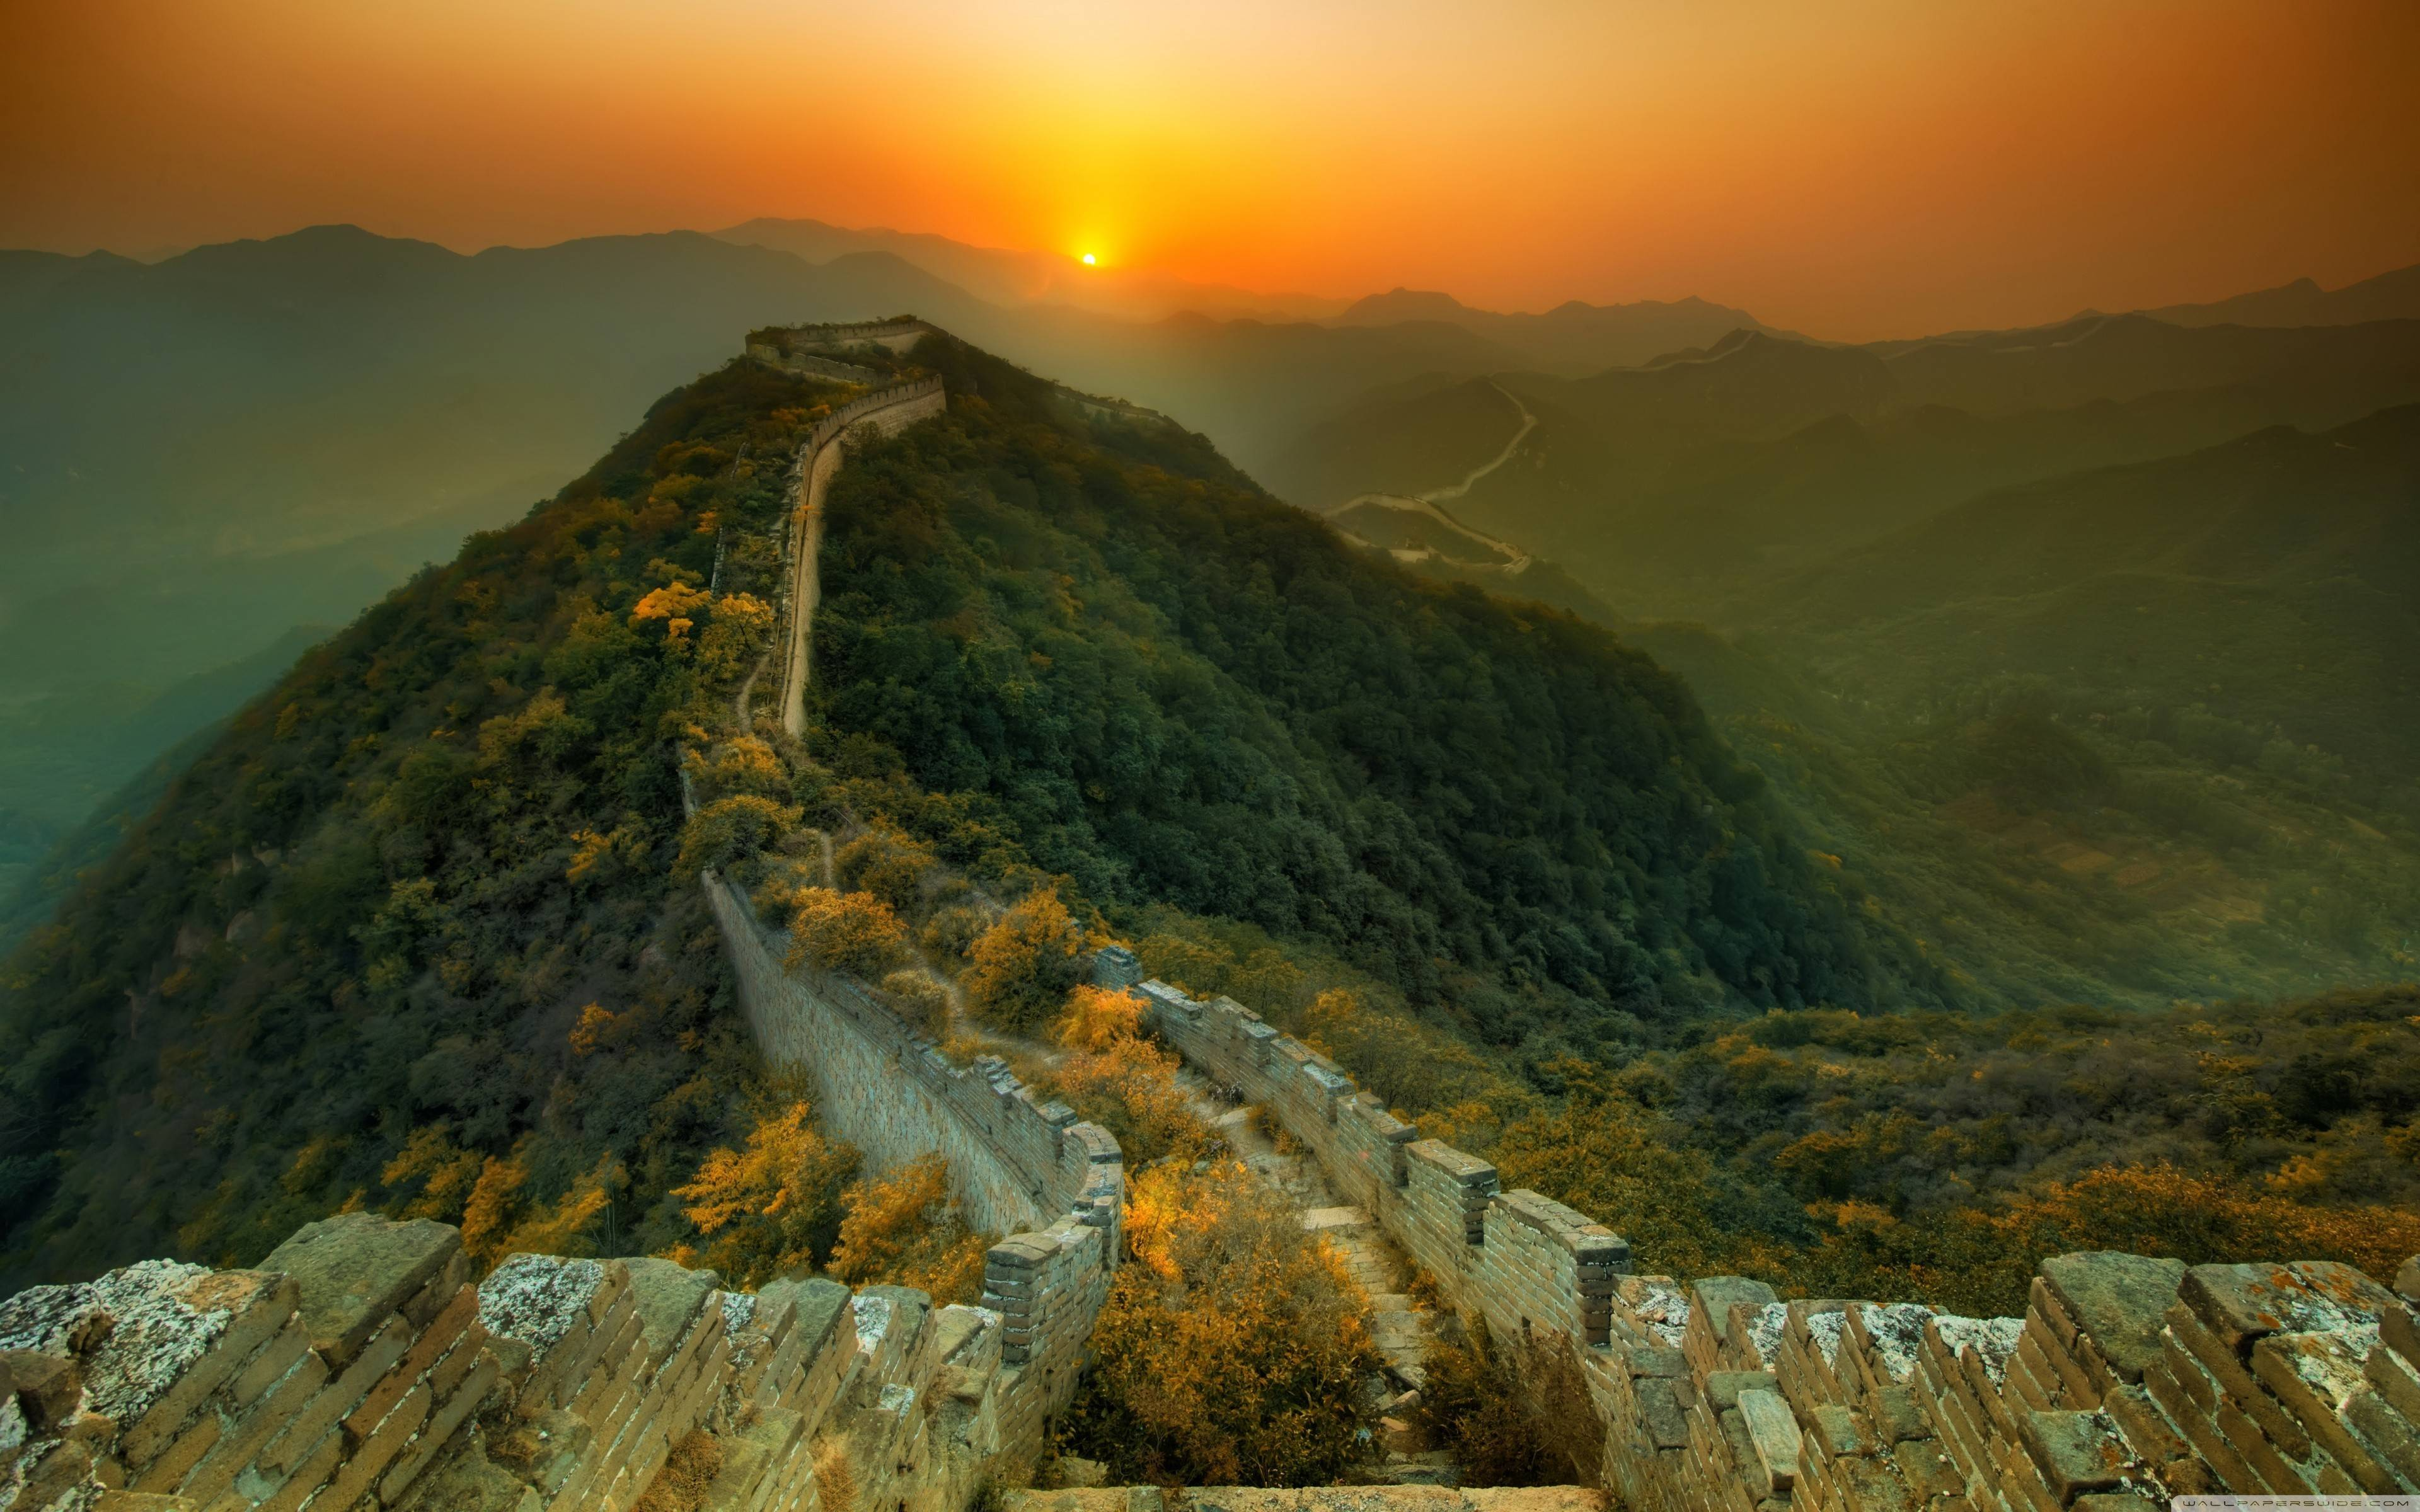 Overgrown section of the Great Wall – China